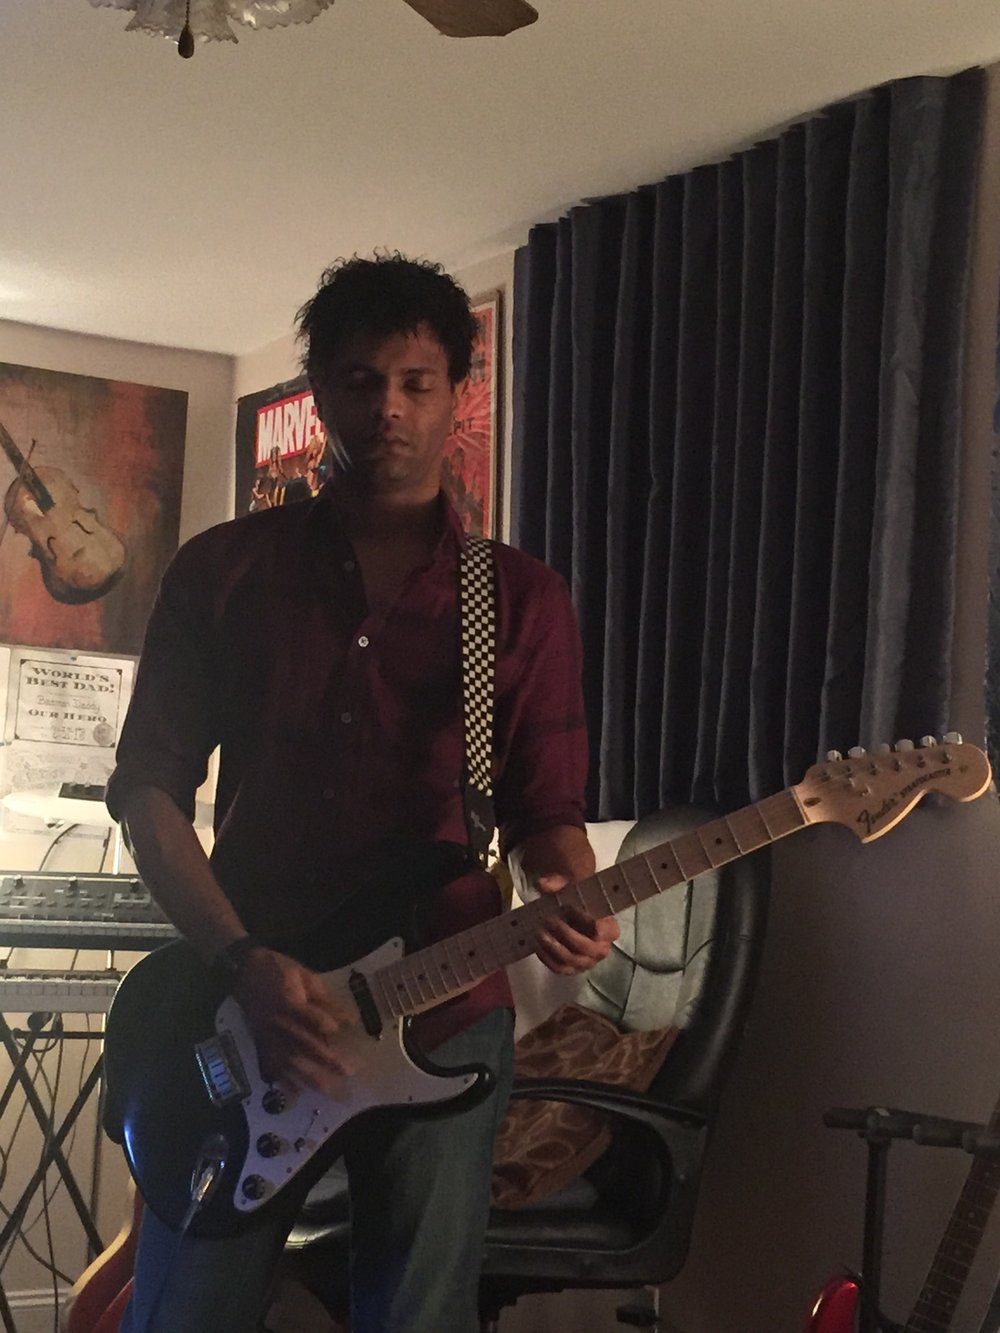 Christian Imes practicing with his Billy Corgan signature Fender Stratocaster